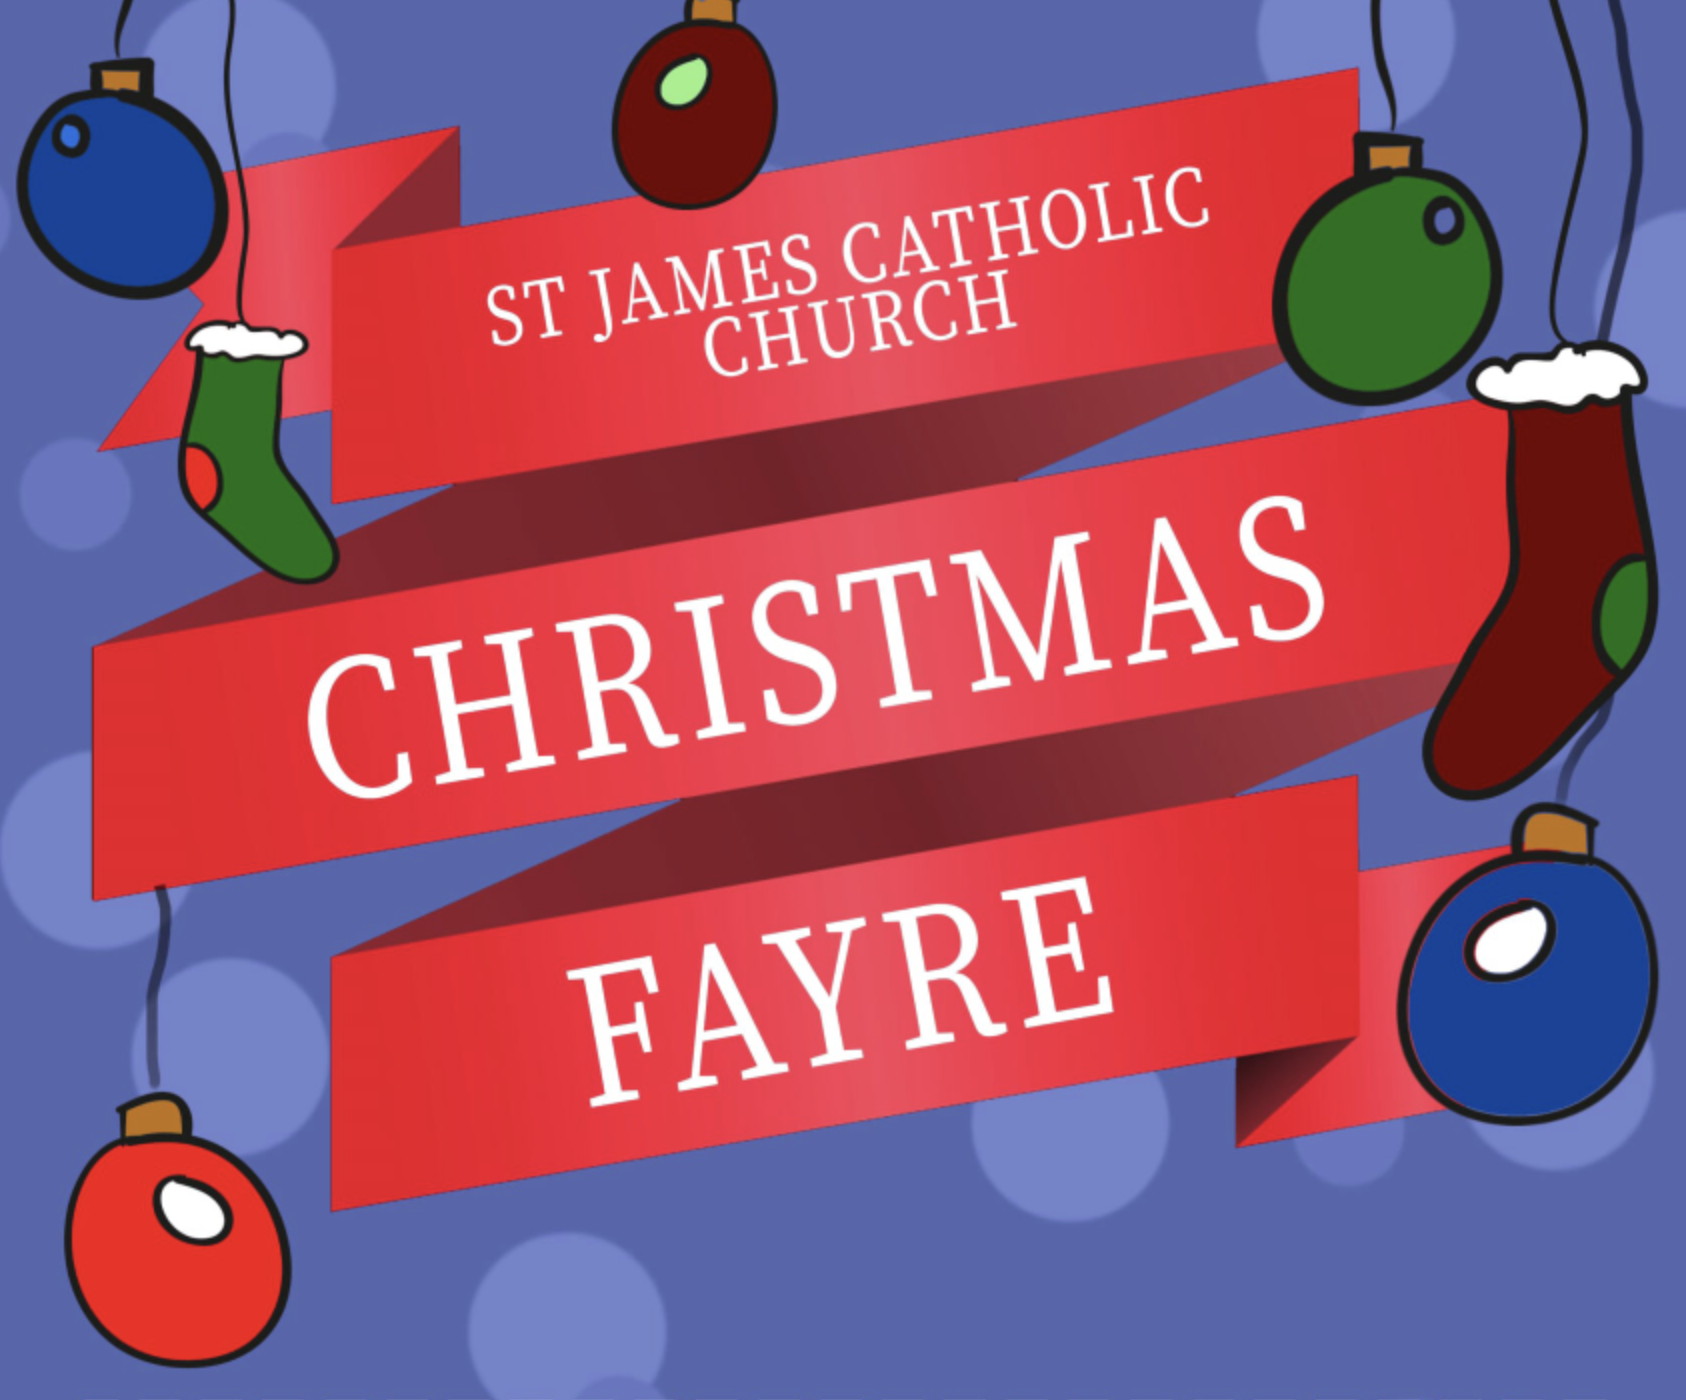 St James Catholic Church Twickenham – Christmas Fair Sunday 24th November